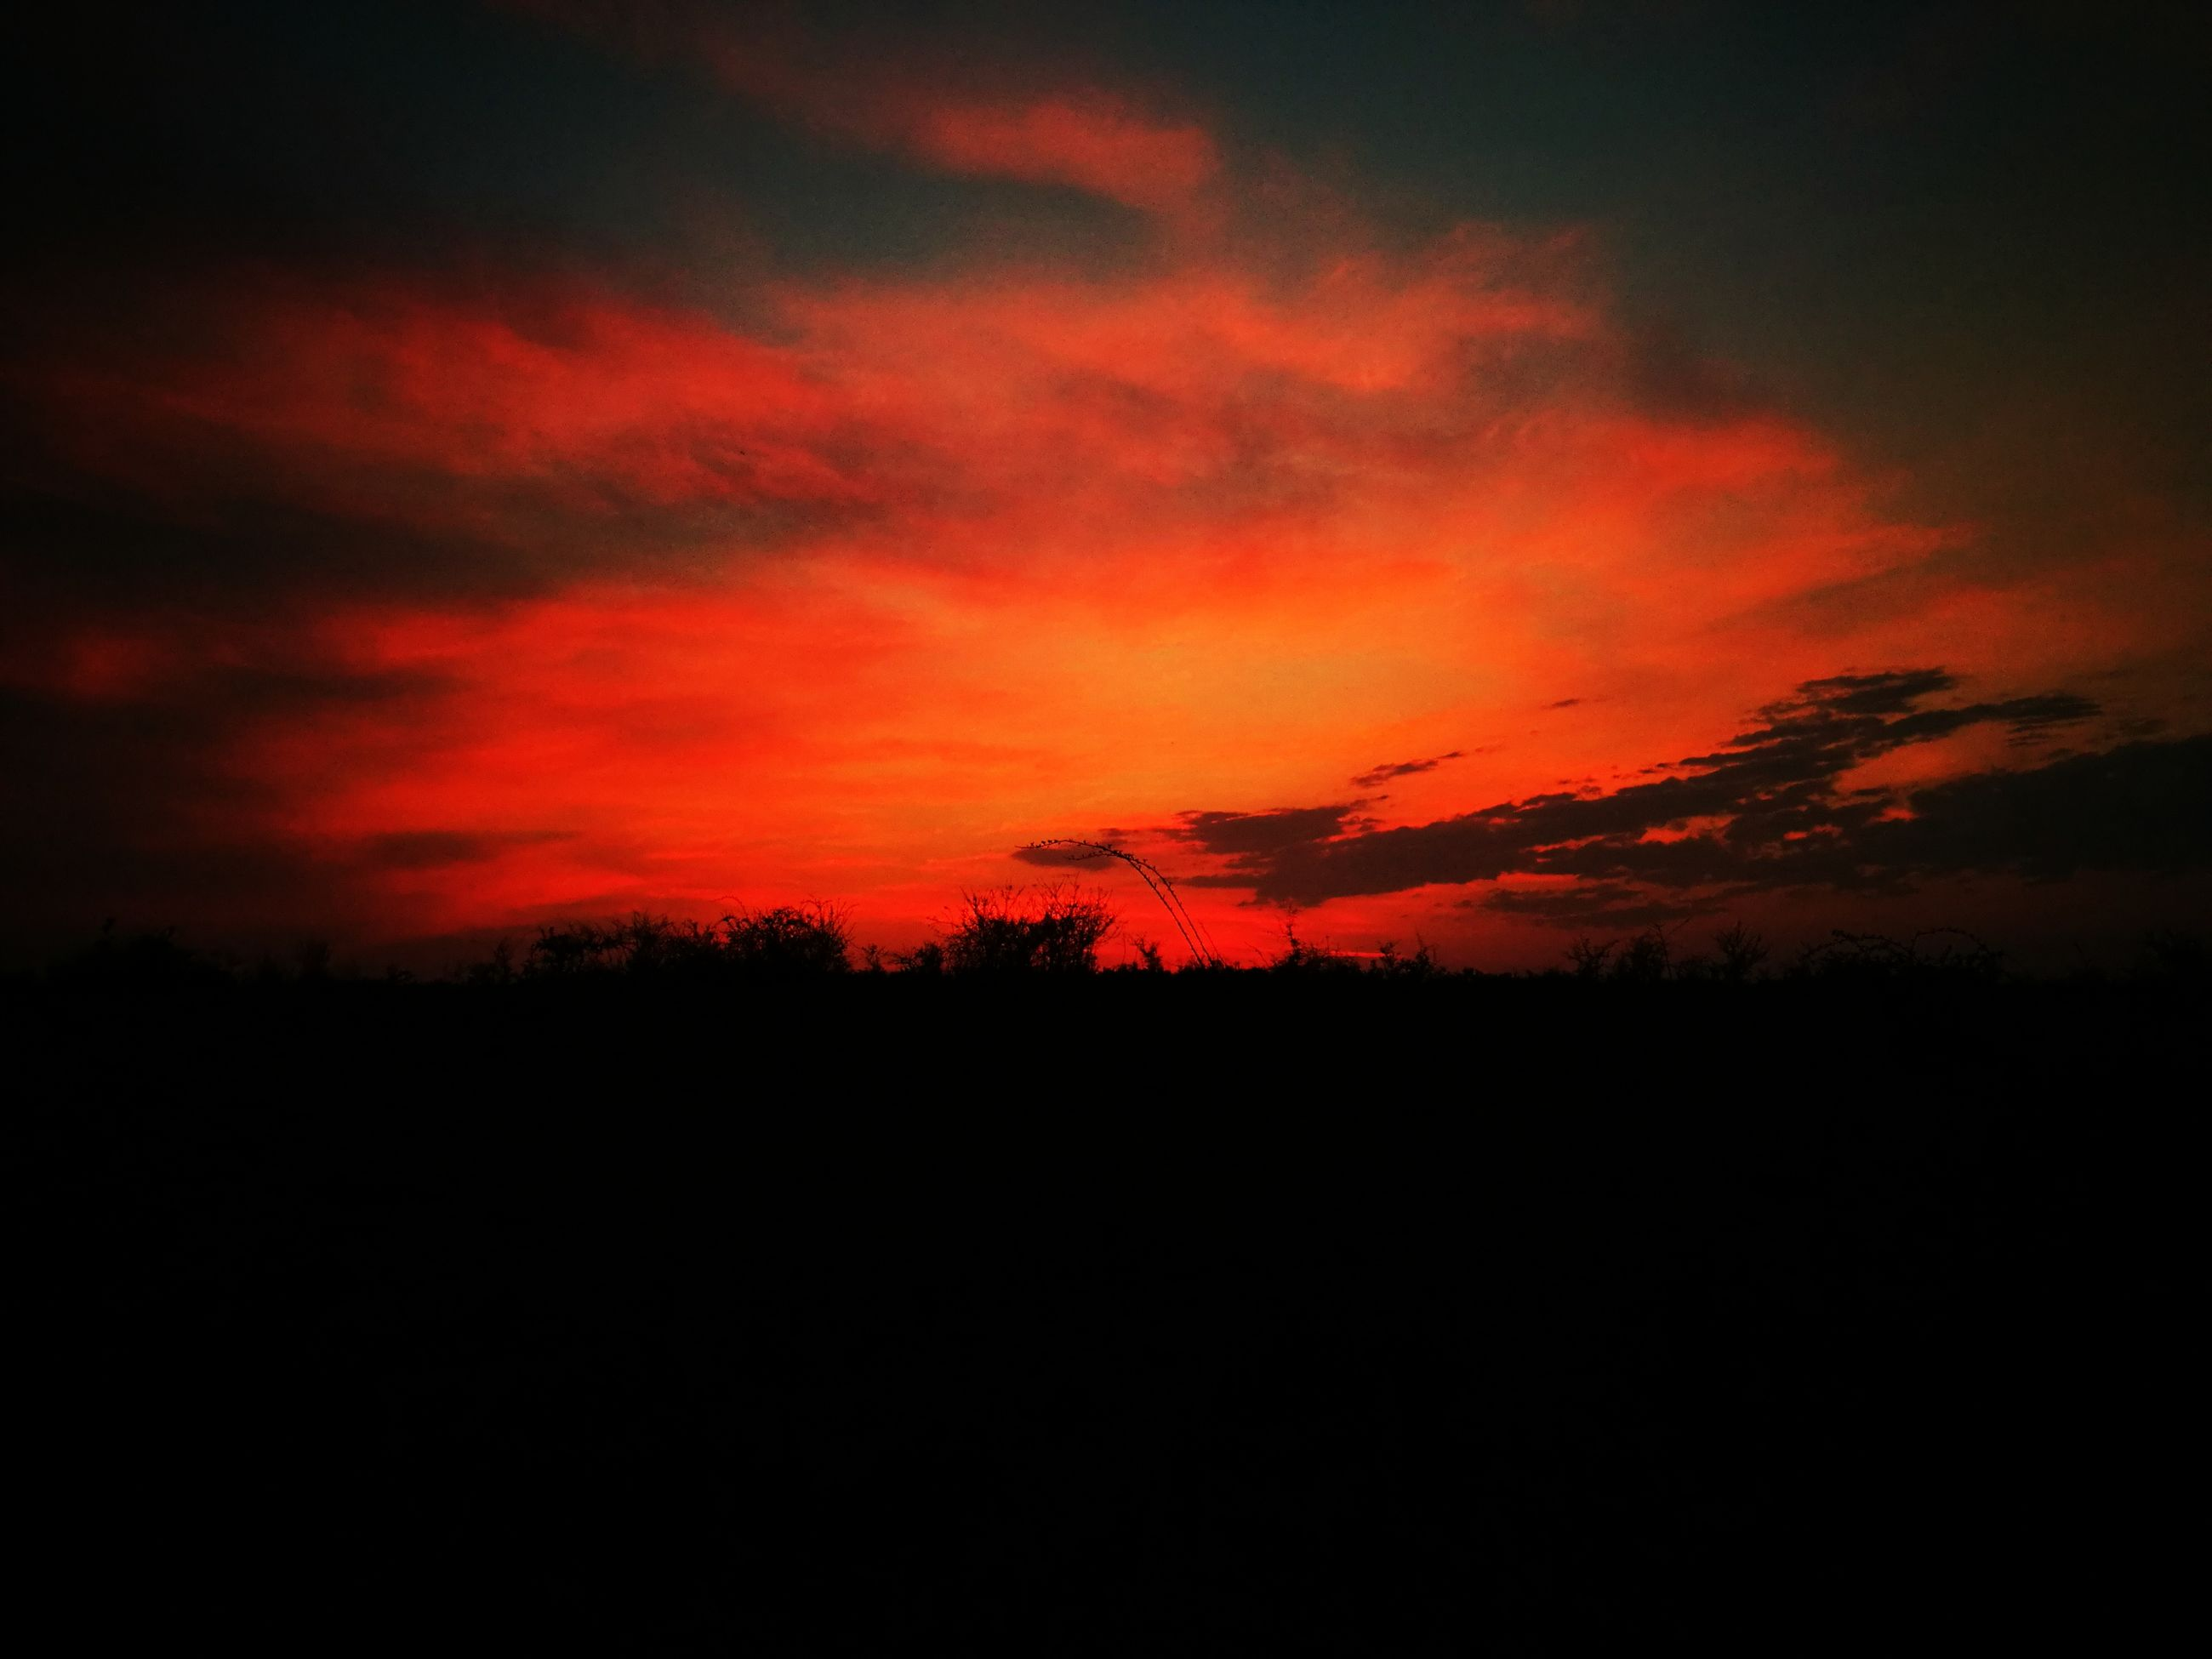 silhouette, sunset, nature, red, beauty in nature, sky, landscape, outdoors, no people